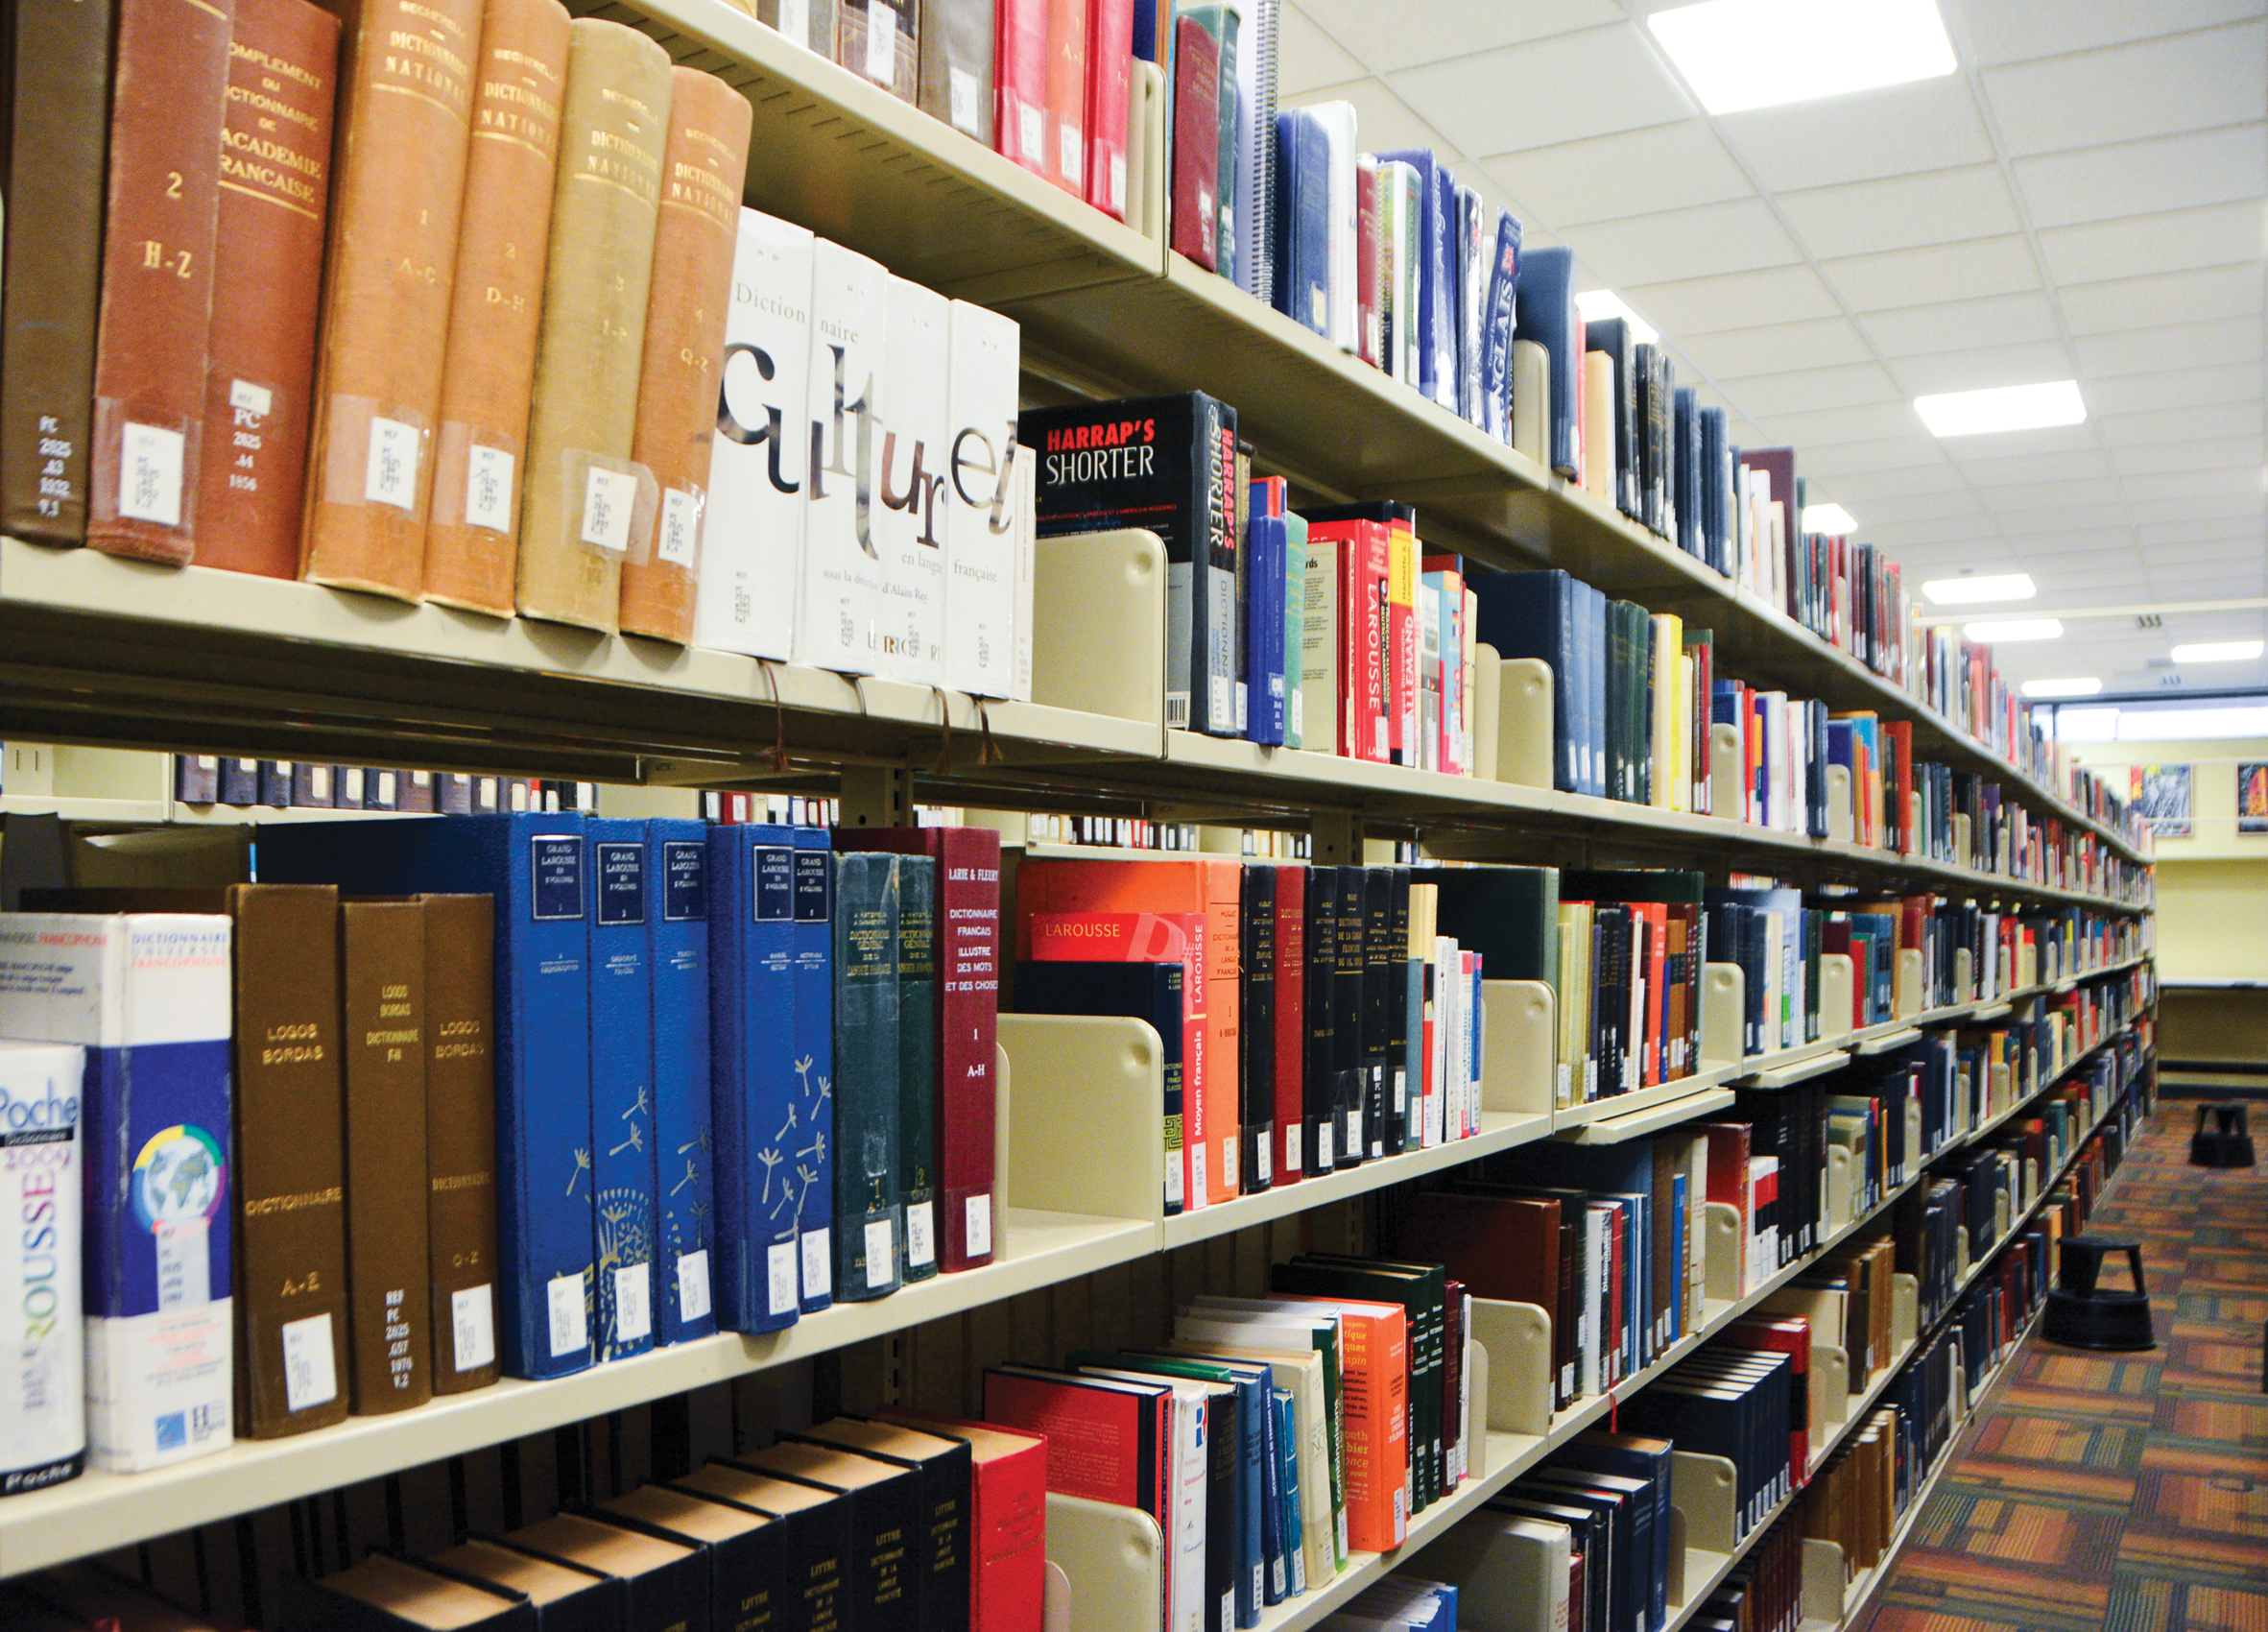 u of s thesis library A thesis or dissertation is a document submitted in support of candidature for an academic degree or professional qualification presenting the author's research and findings.